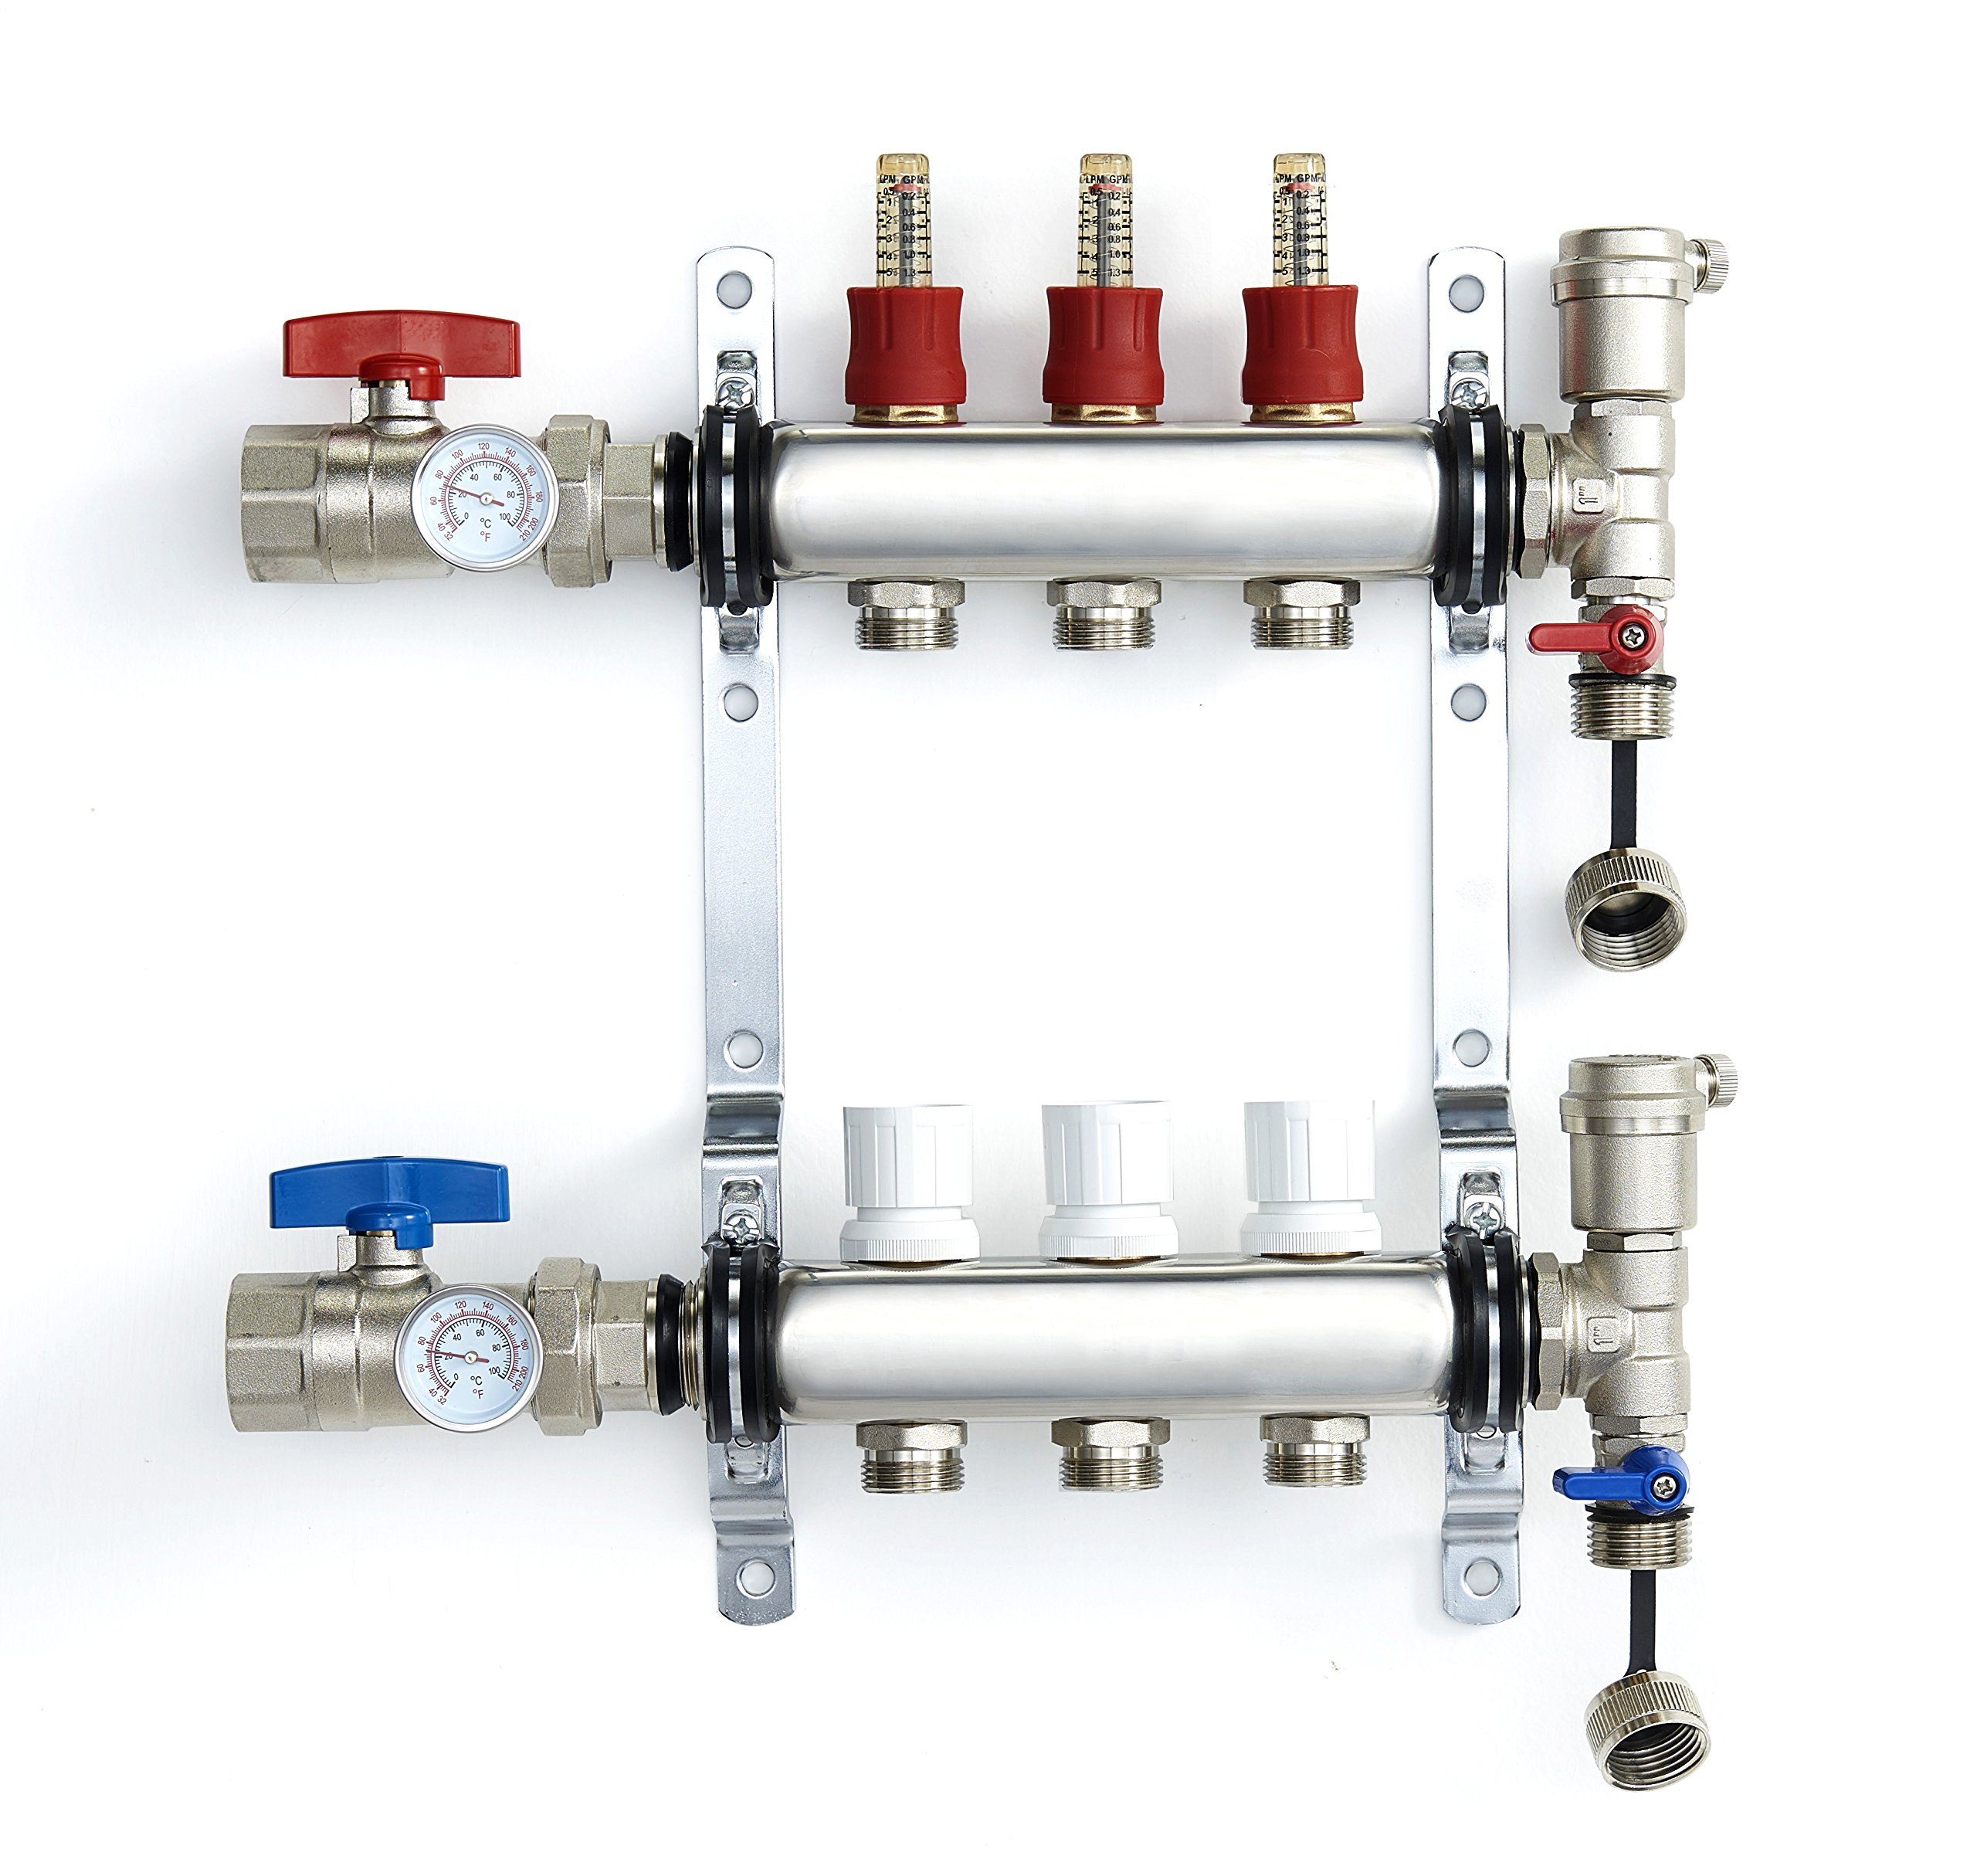 3 Loop 1/2-Inch PEX Manifold Stainless Steel Radiant Floor Heating Set Adjustable Flow Valves Automatic Air Vent 1/2'' Flexible Tubing Heated Hydronic System 3-Branch/Loops Manifolds Hot Cold